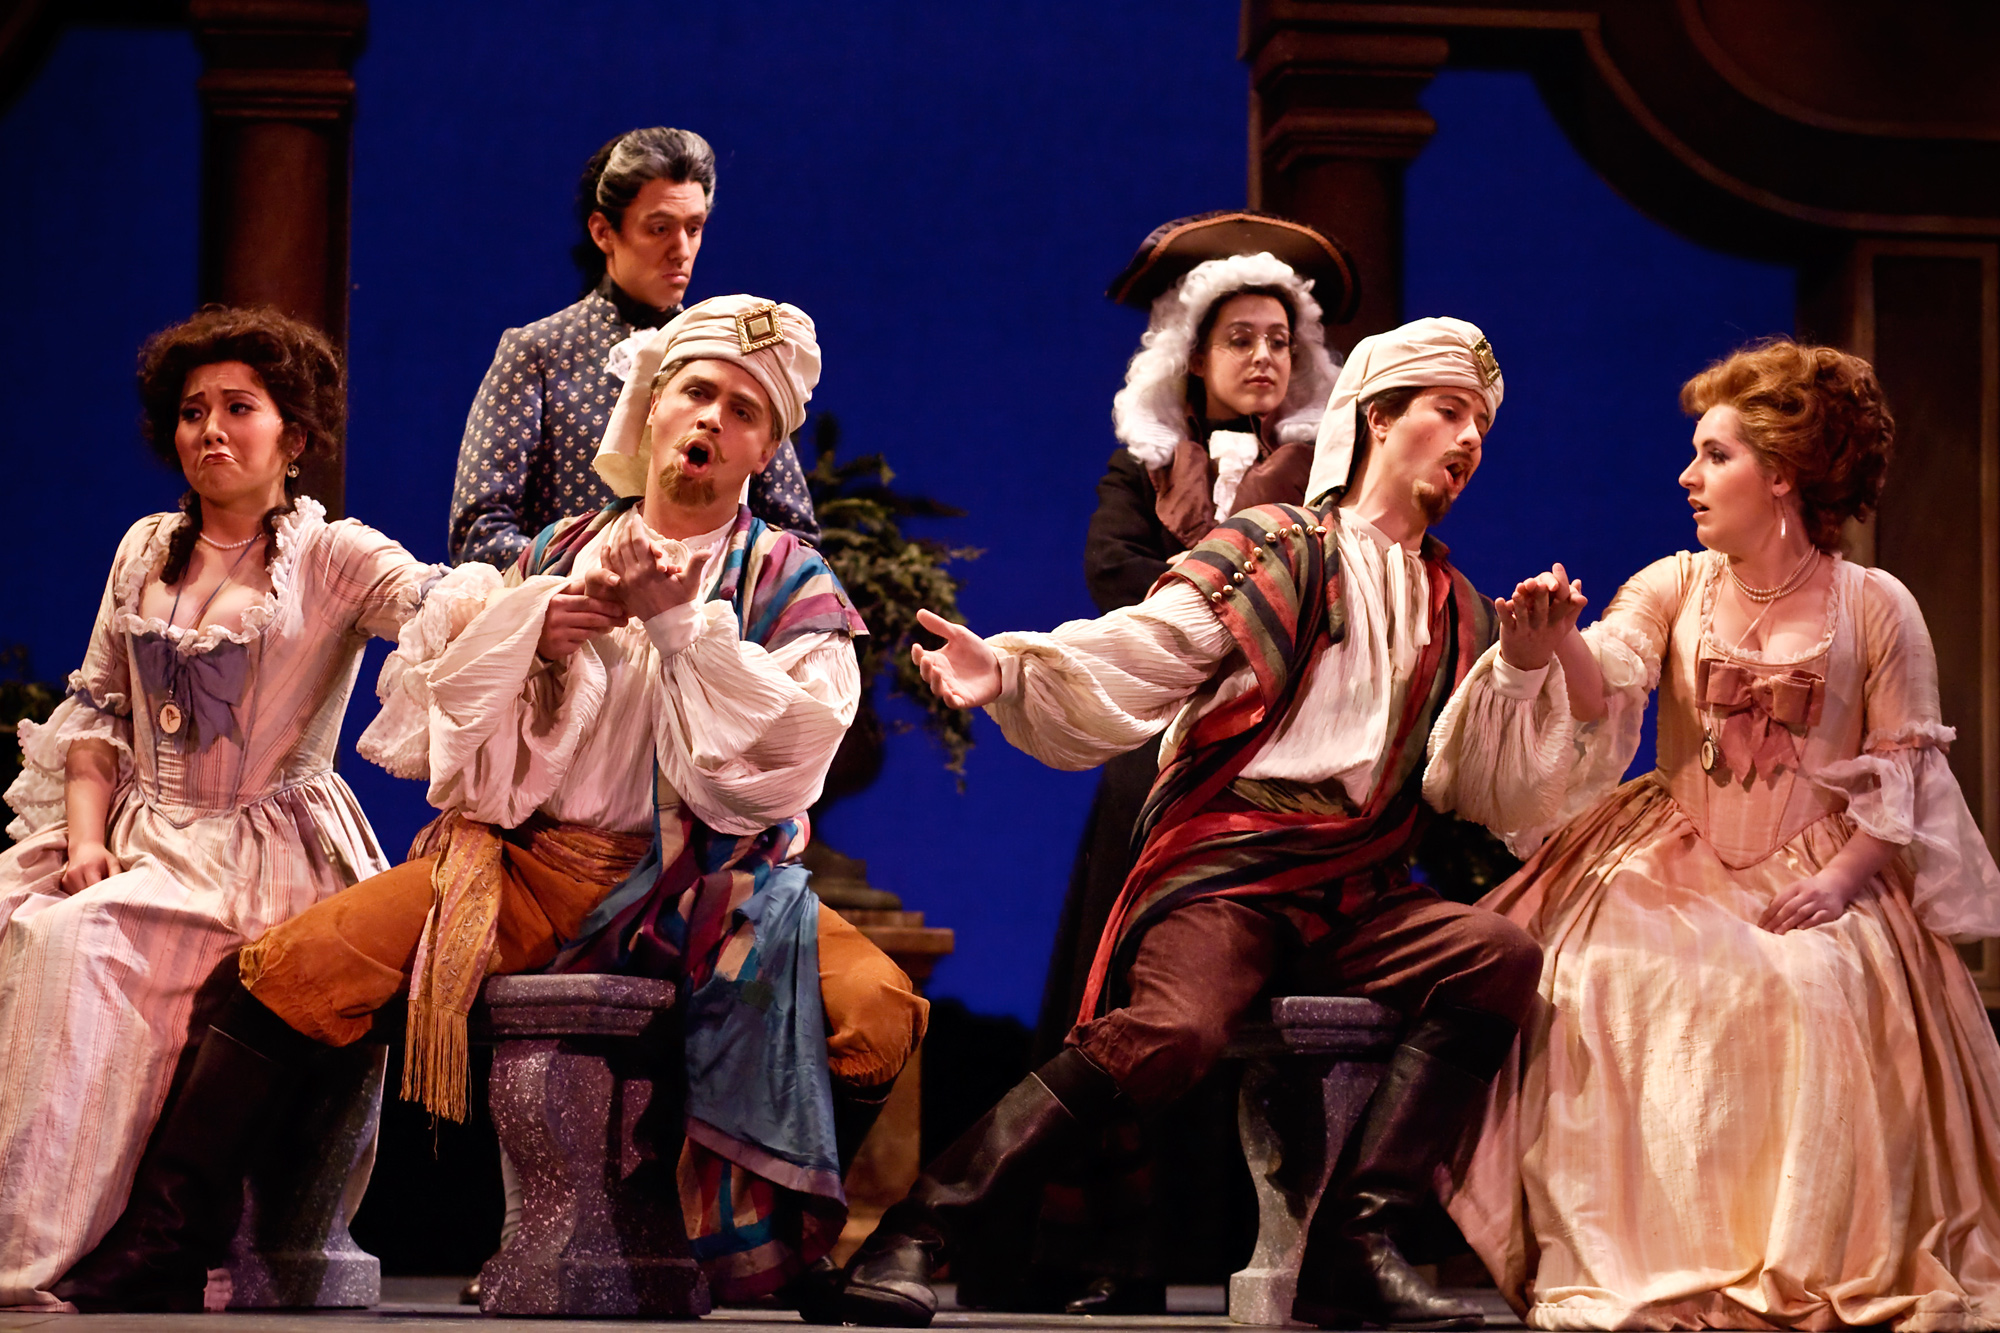 opera music Contemporary tradition okcu's oklahoma opera and music theater company is the world's oldest campus troupe dedicated to both opera and music theater and has won.